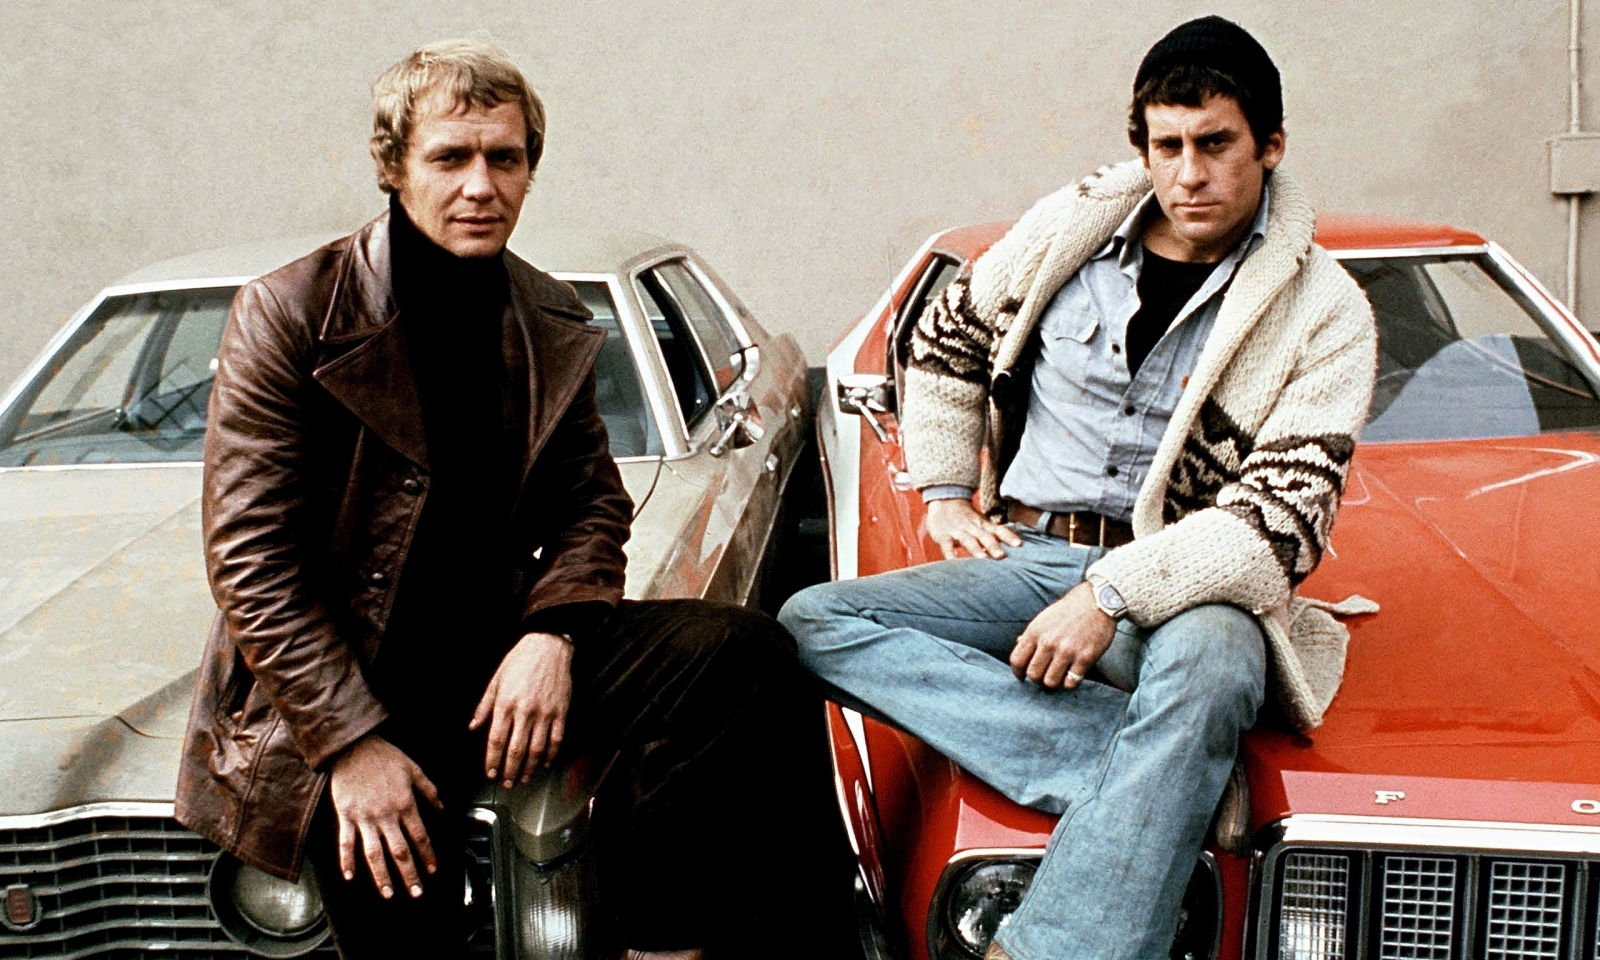 'Guardians of the Galaxy' Director Developing 'Starsky and Hutch' TV Reboot